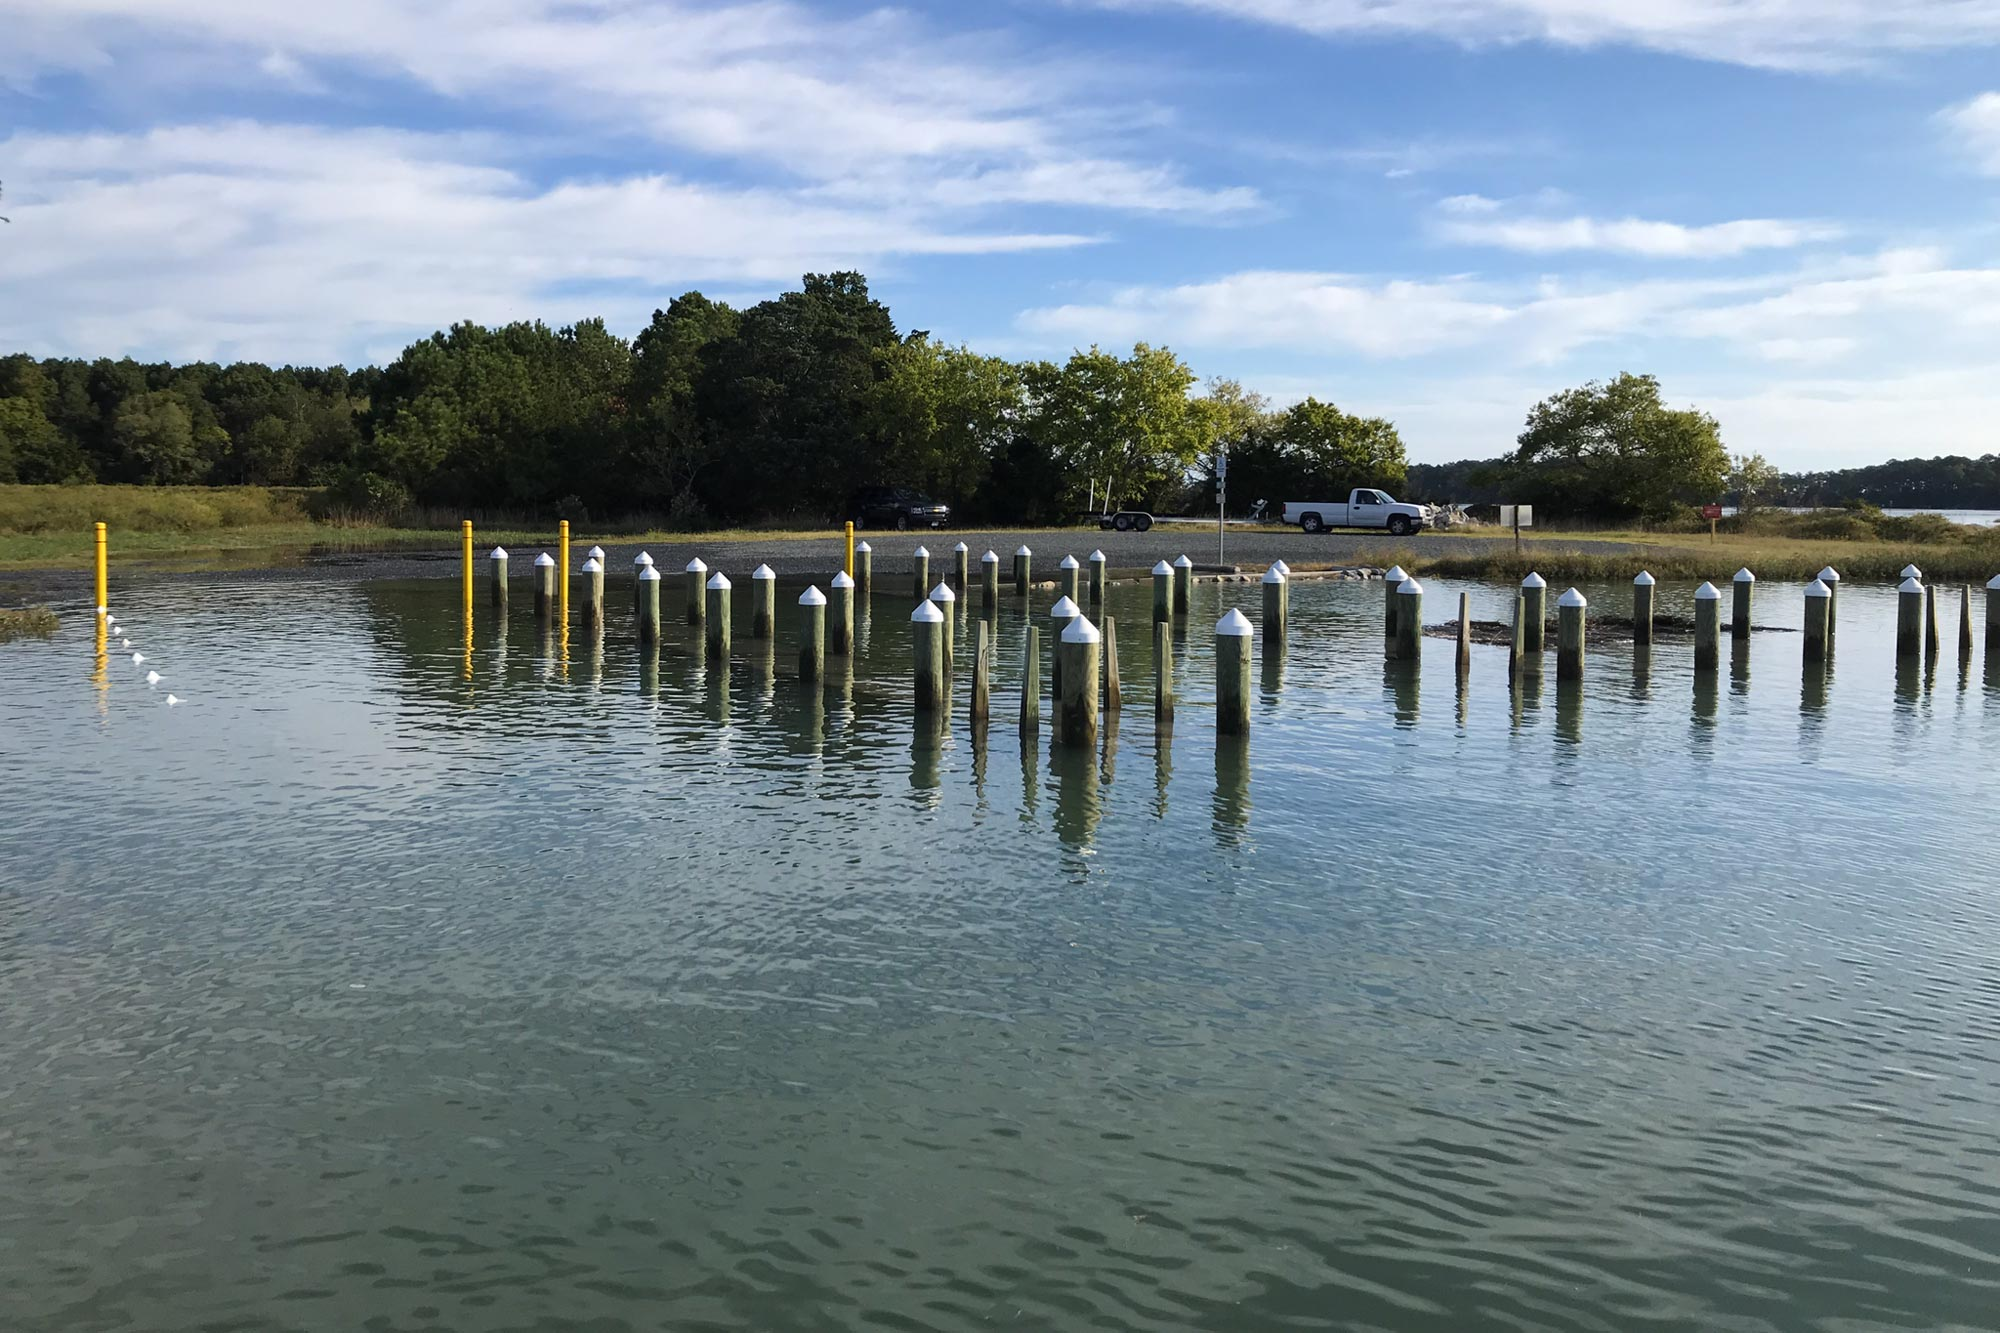 The king tide flooded infrastructure, like boat ramps used daily by commercial watermen. As sea levels continue to rise, these flooding events are expected to increase.